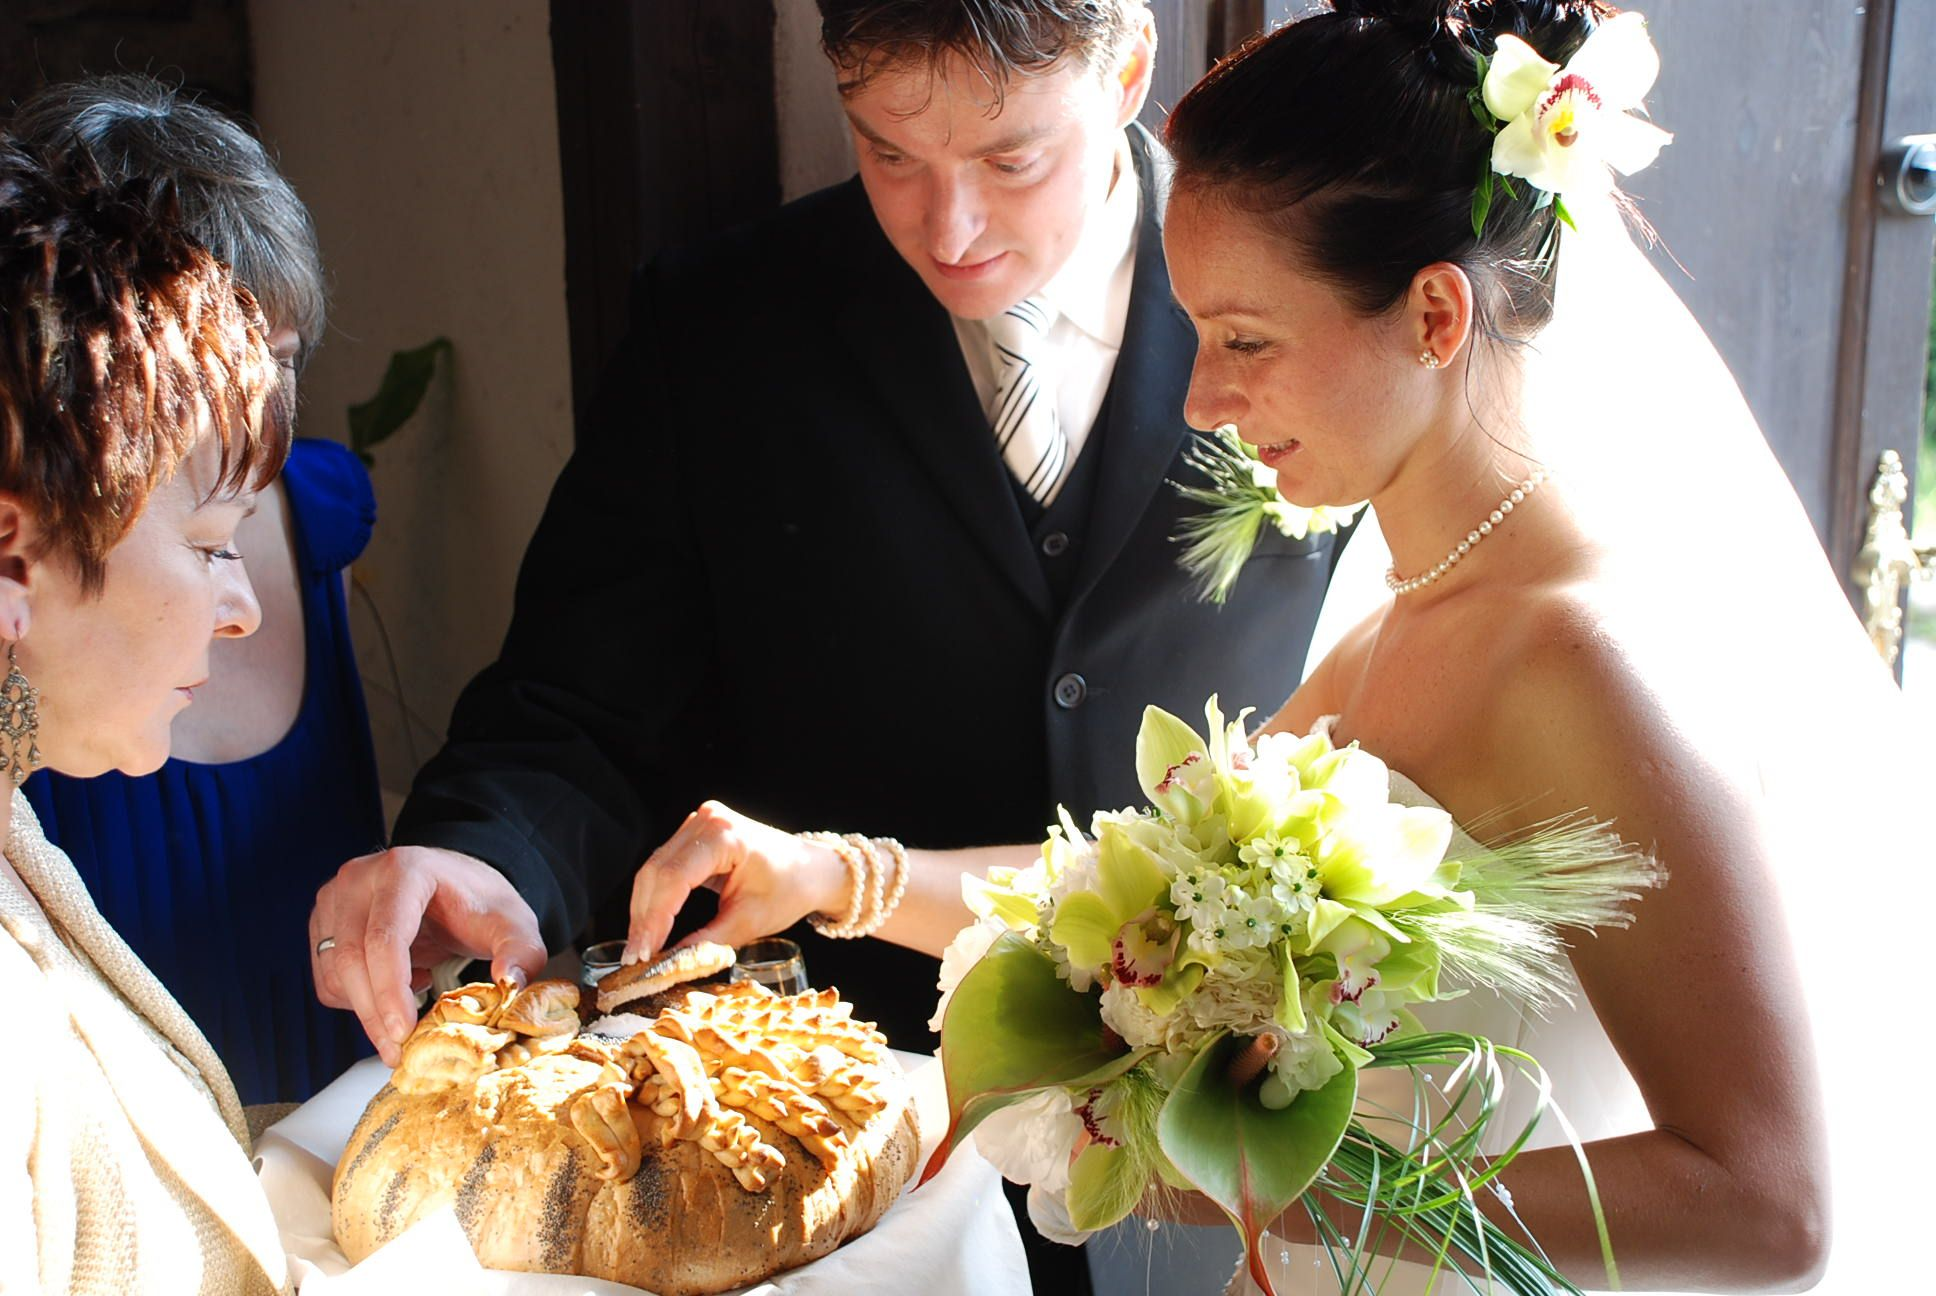 Polish Wedding Cake Tradition